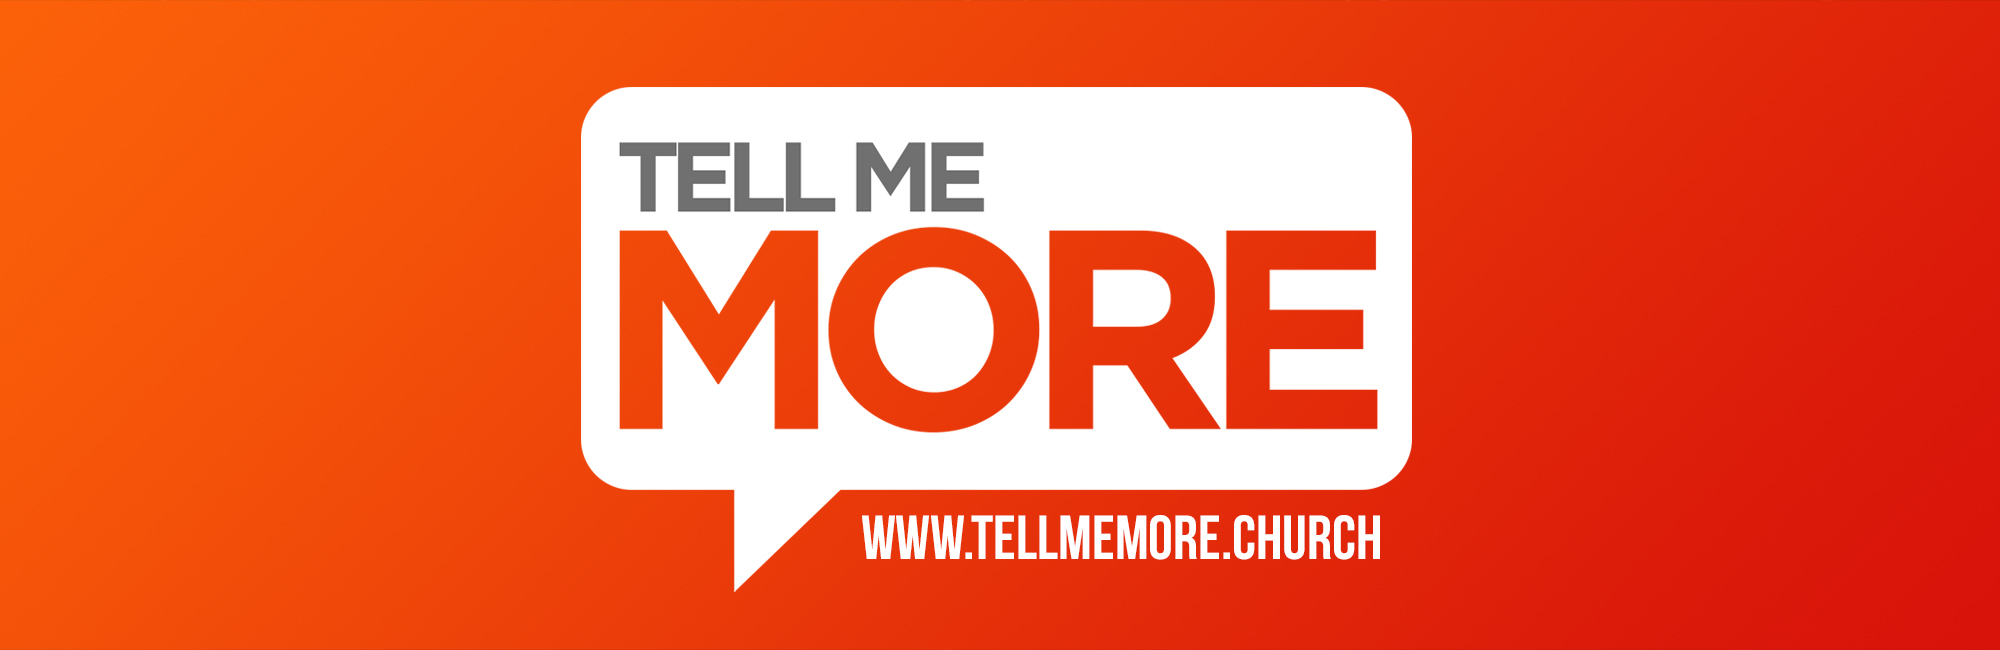 Tell Me More - Sermon Web Header